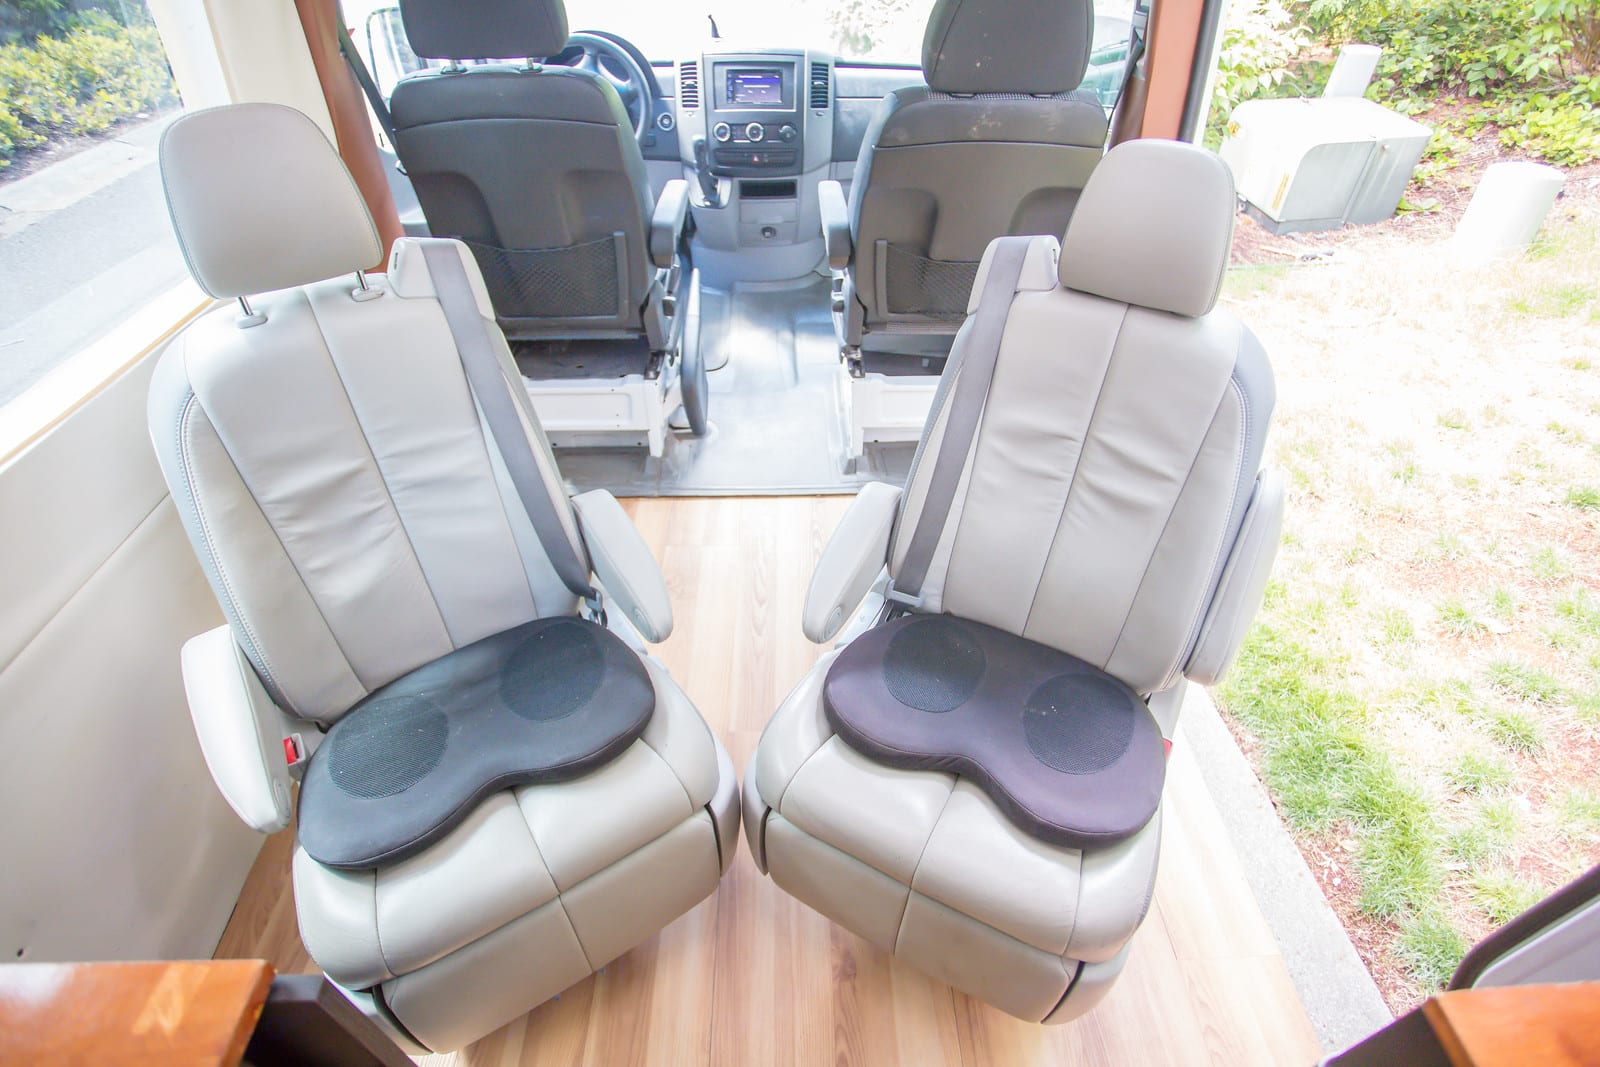 Seats swivel and rotate. Mercedes-Benz Sprinter 2010